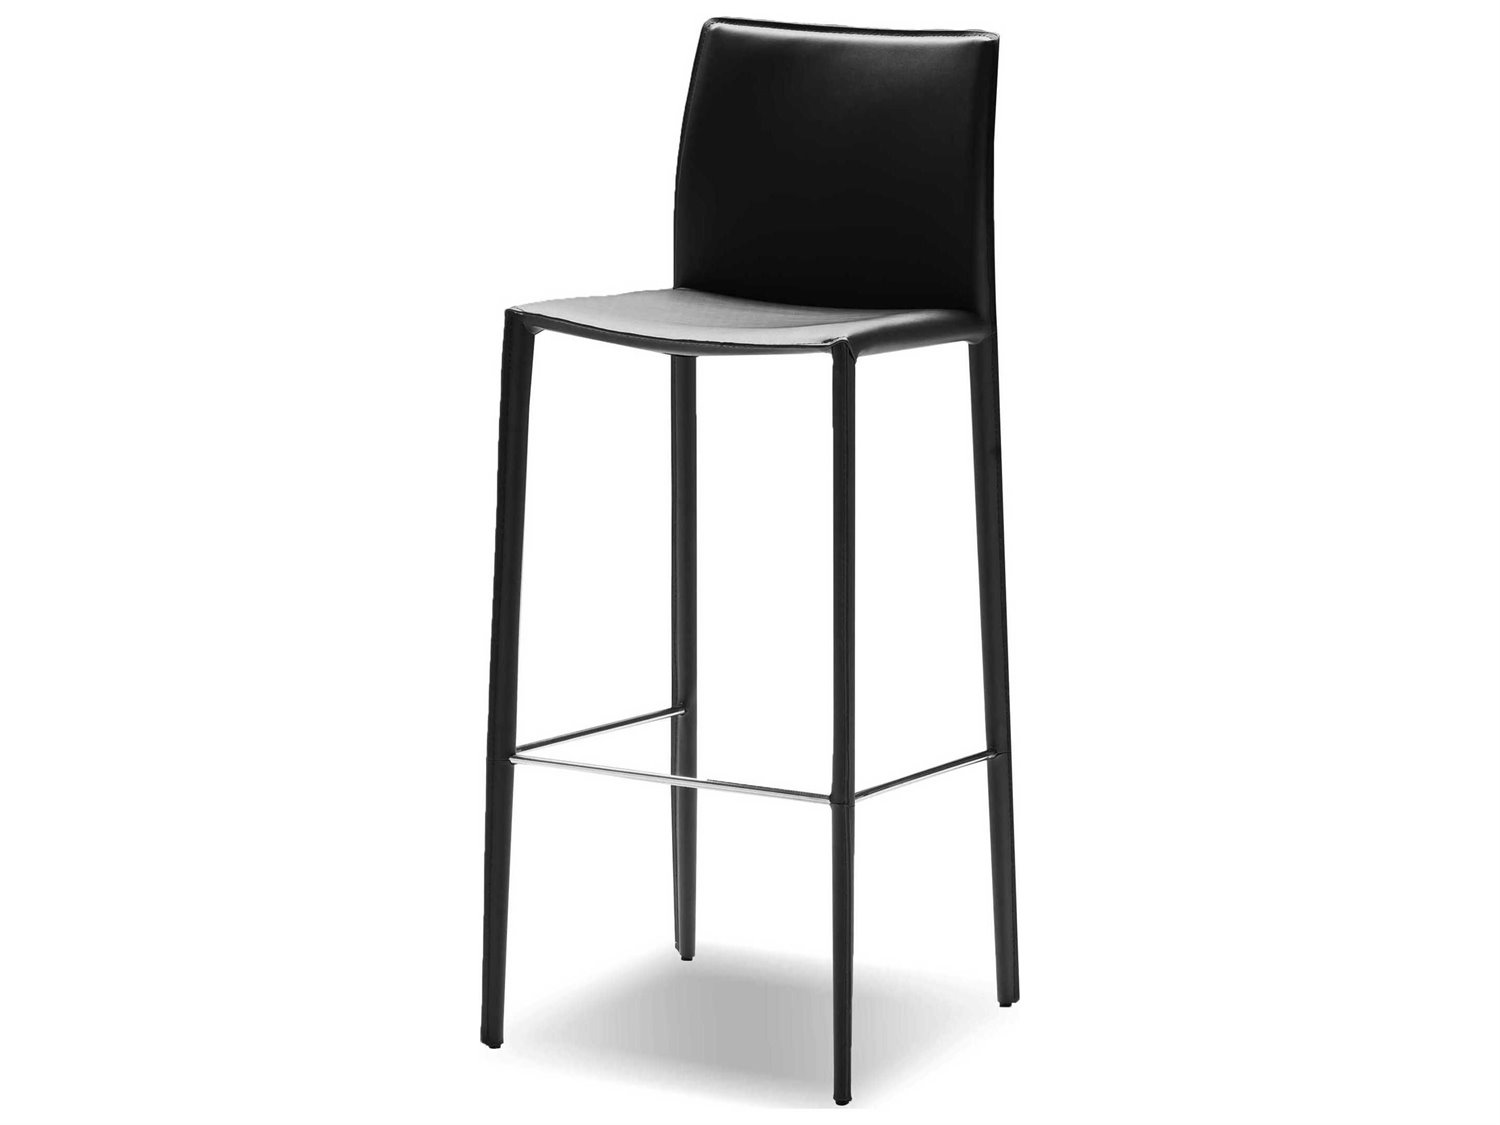 Miraculous Mobital Zak Black Leather Bar Stool Sold In 2 Pabps2019 Chair Design Images Pabps2019Com